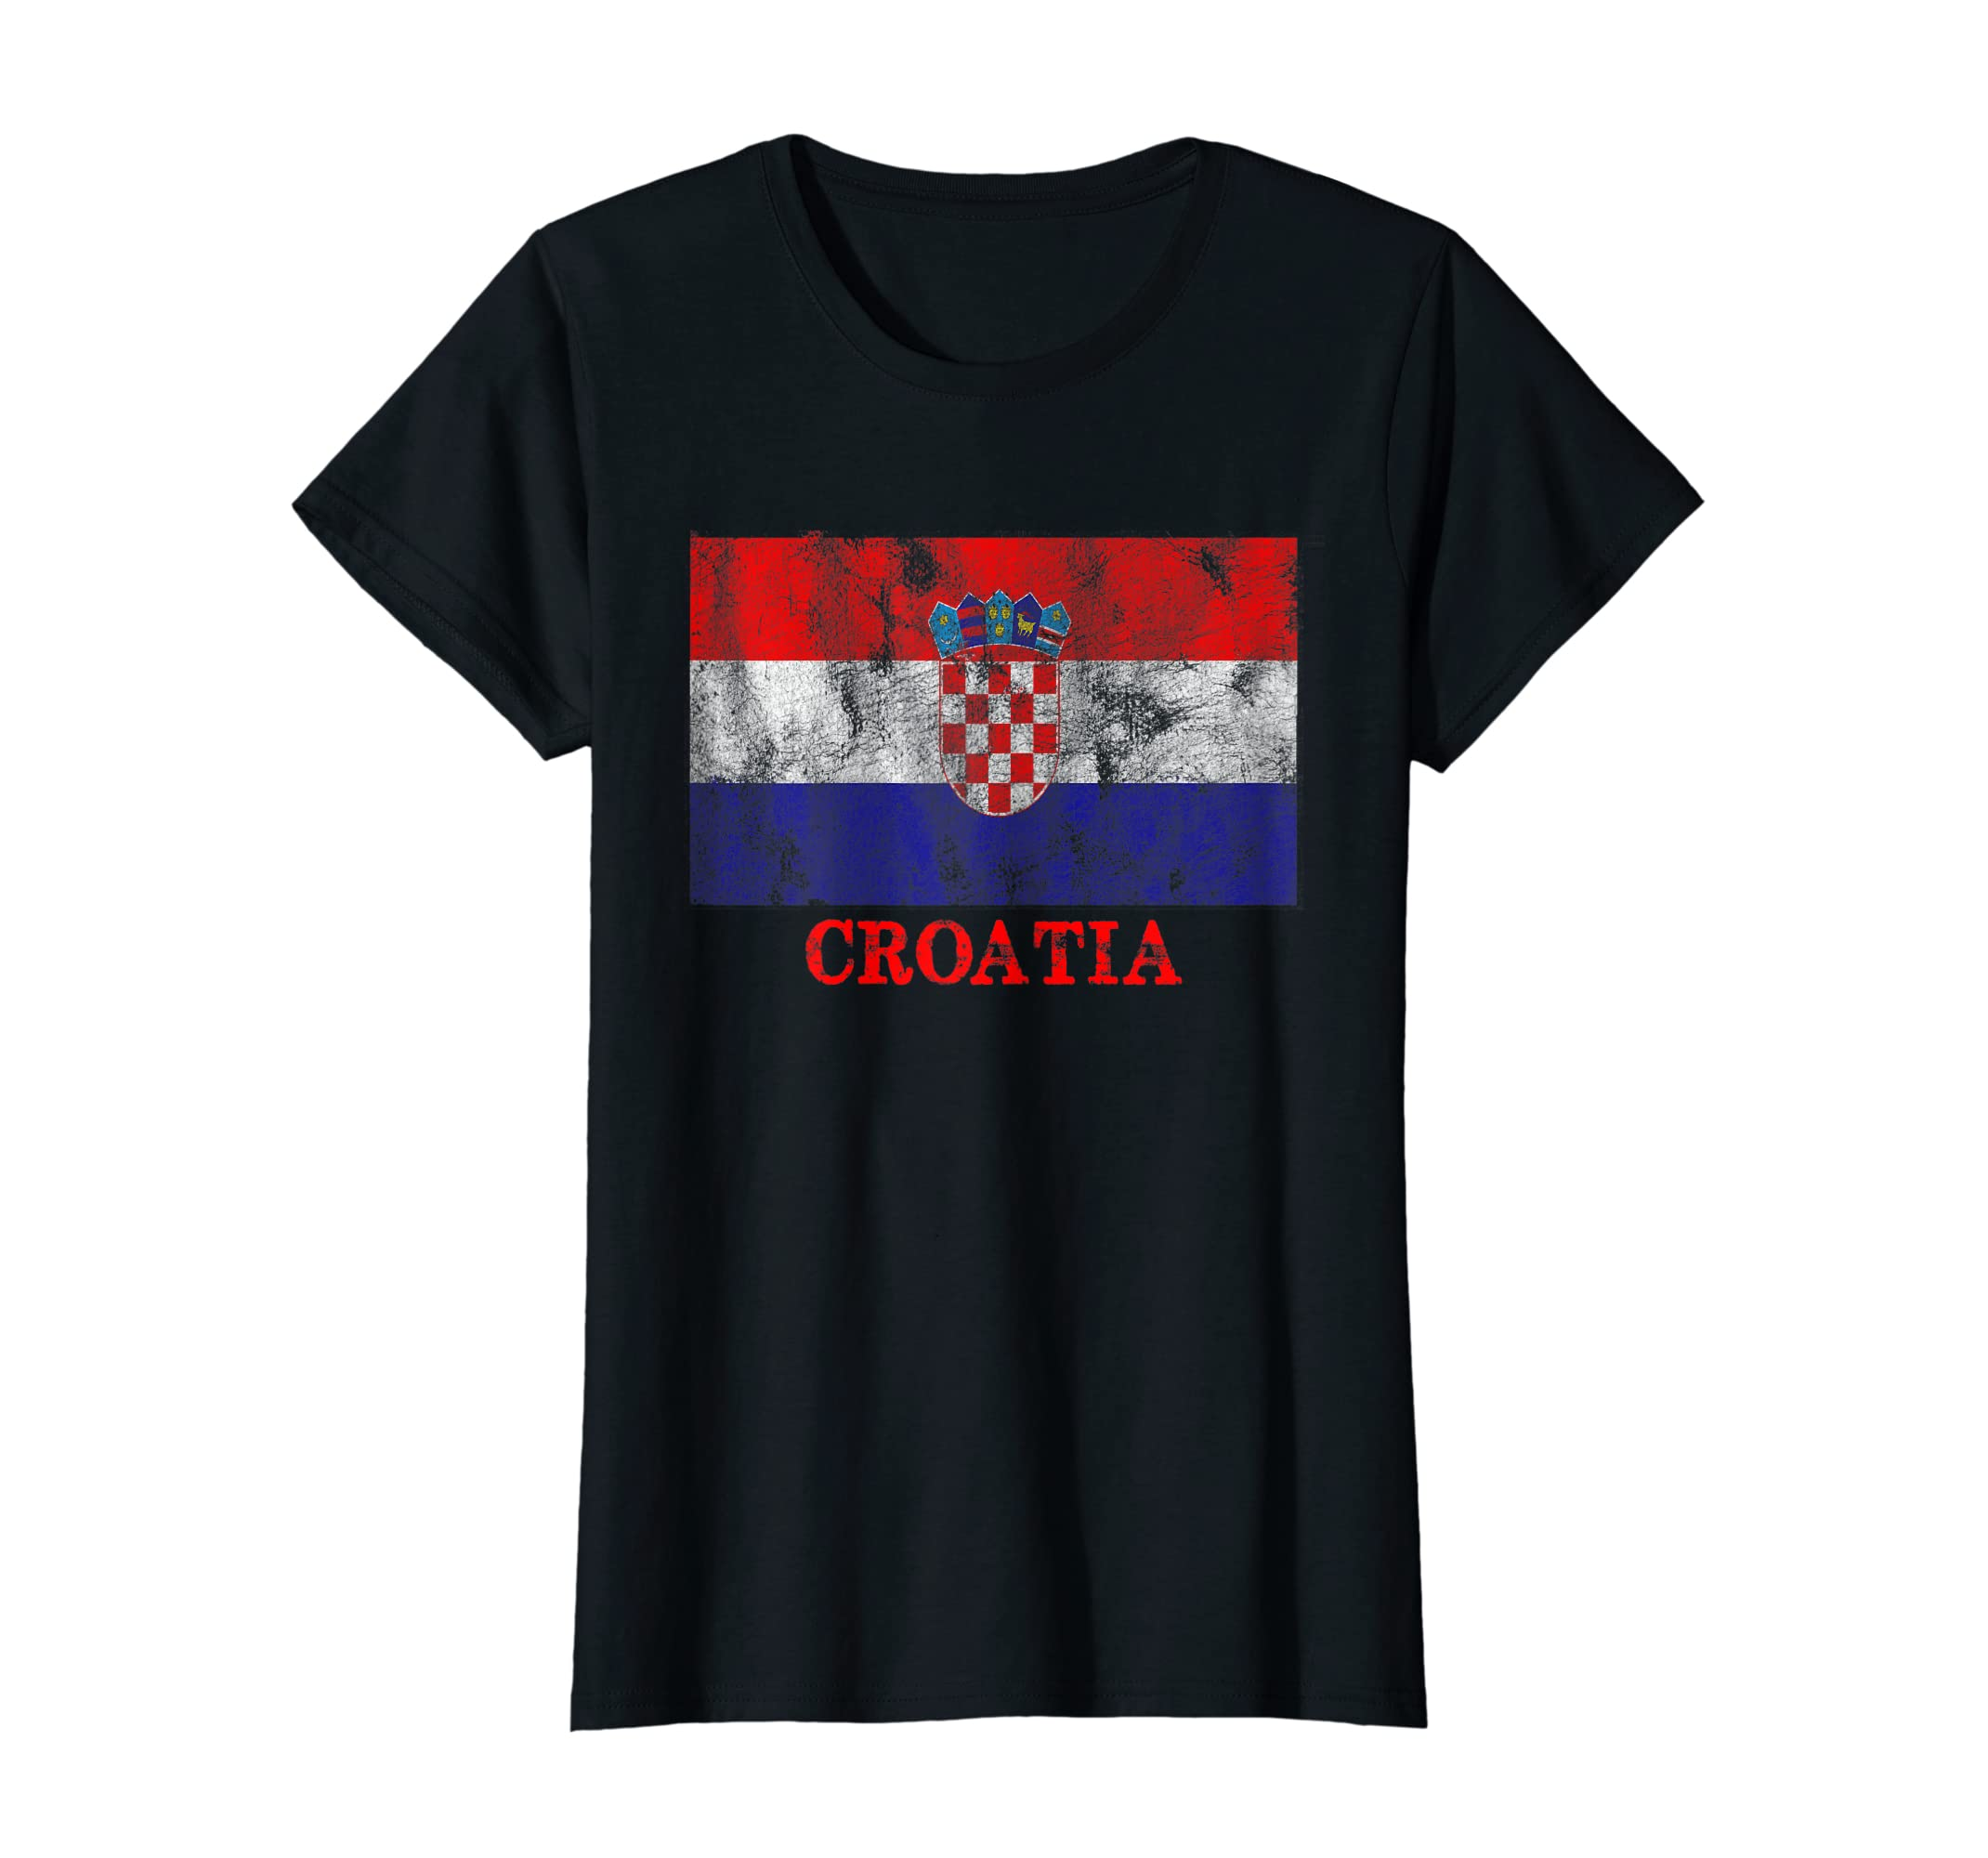 Amazon.com  Croatia Flag T-Shirt Distressed Croatia Soccer Jersey  Clothing 899b5bca97